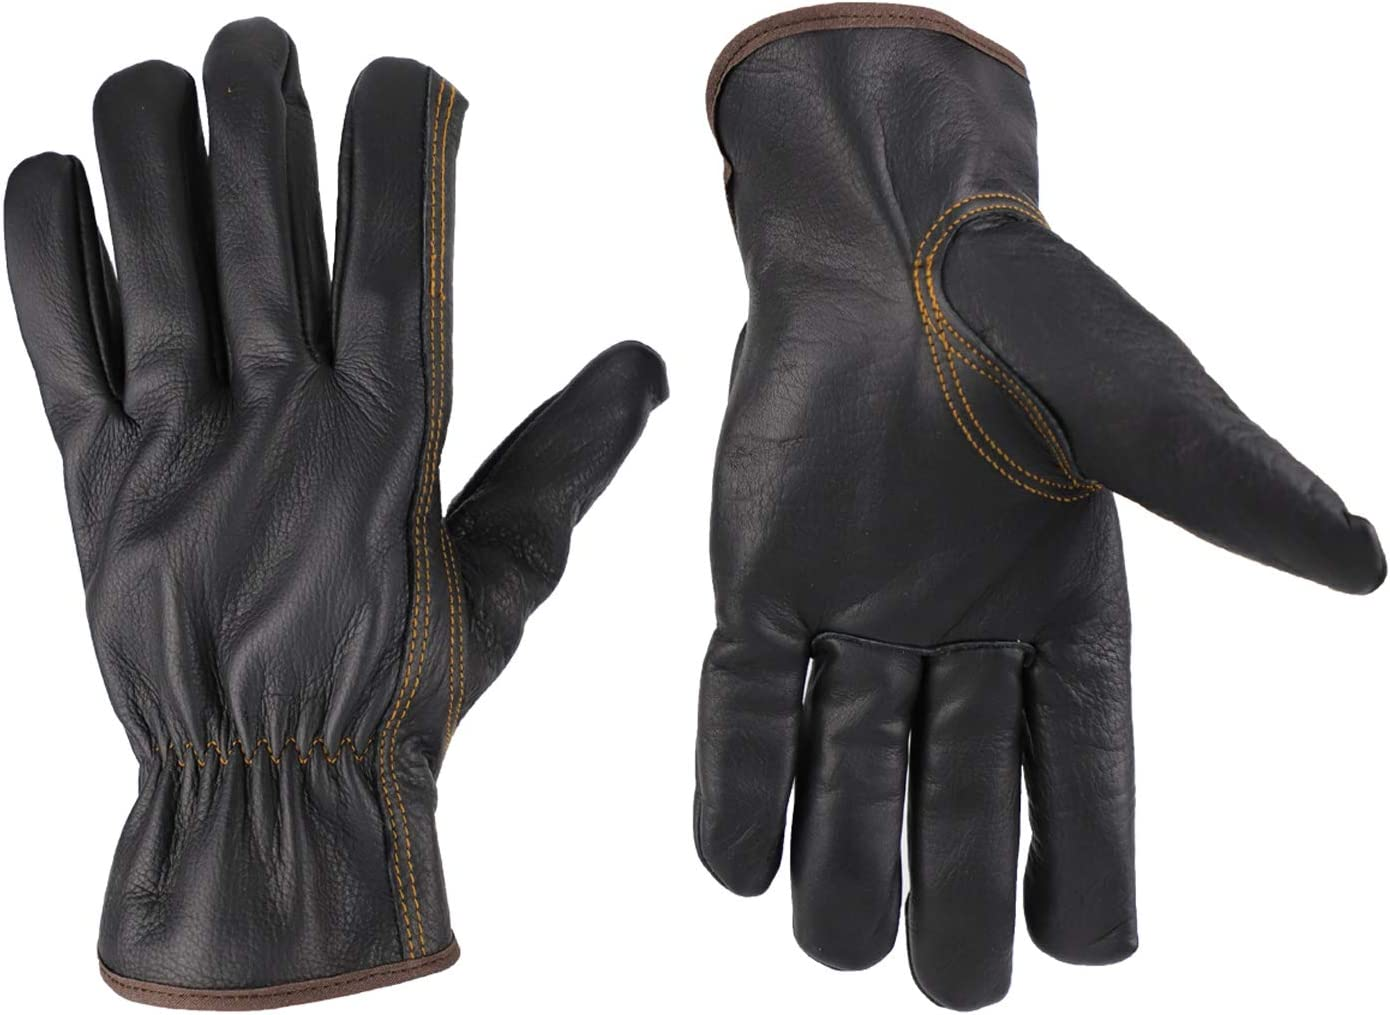 KIM YUAN Winter Warm Work Gloves 3M Thinsulate Lining Perfect for Gardening/Cutting/Construction/Motorcycle, Men & Women (M)